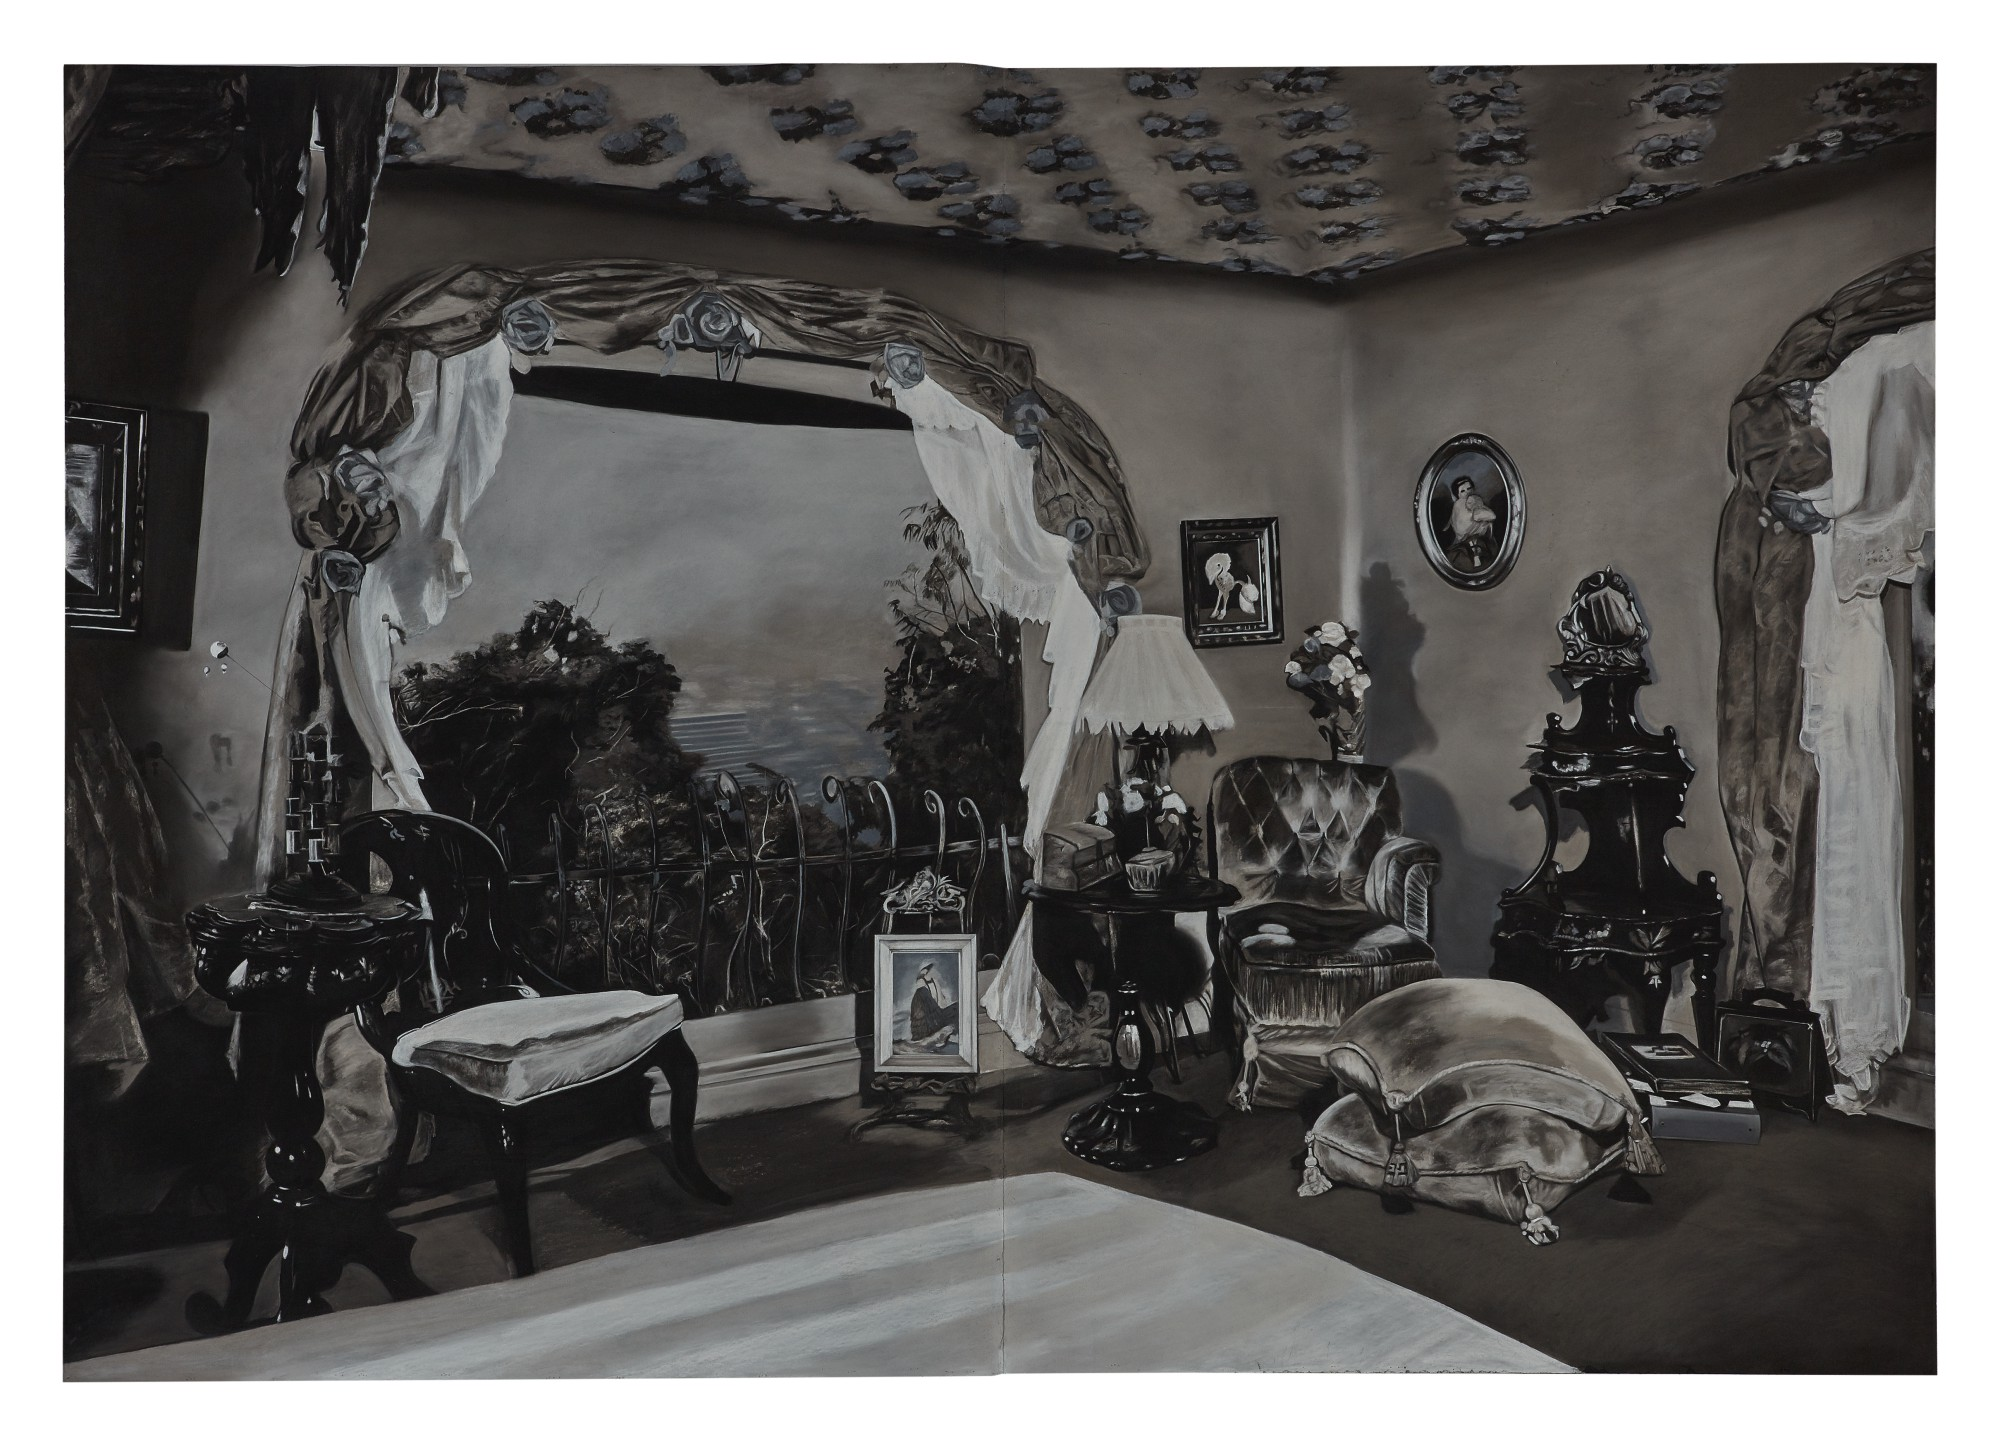 MICHELE ZALOPANY | BEQUEST (GYPSY ROSE LEE'S BEDROOM)